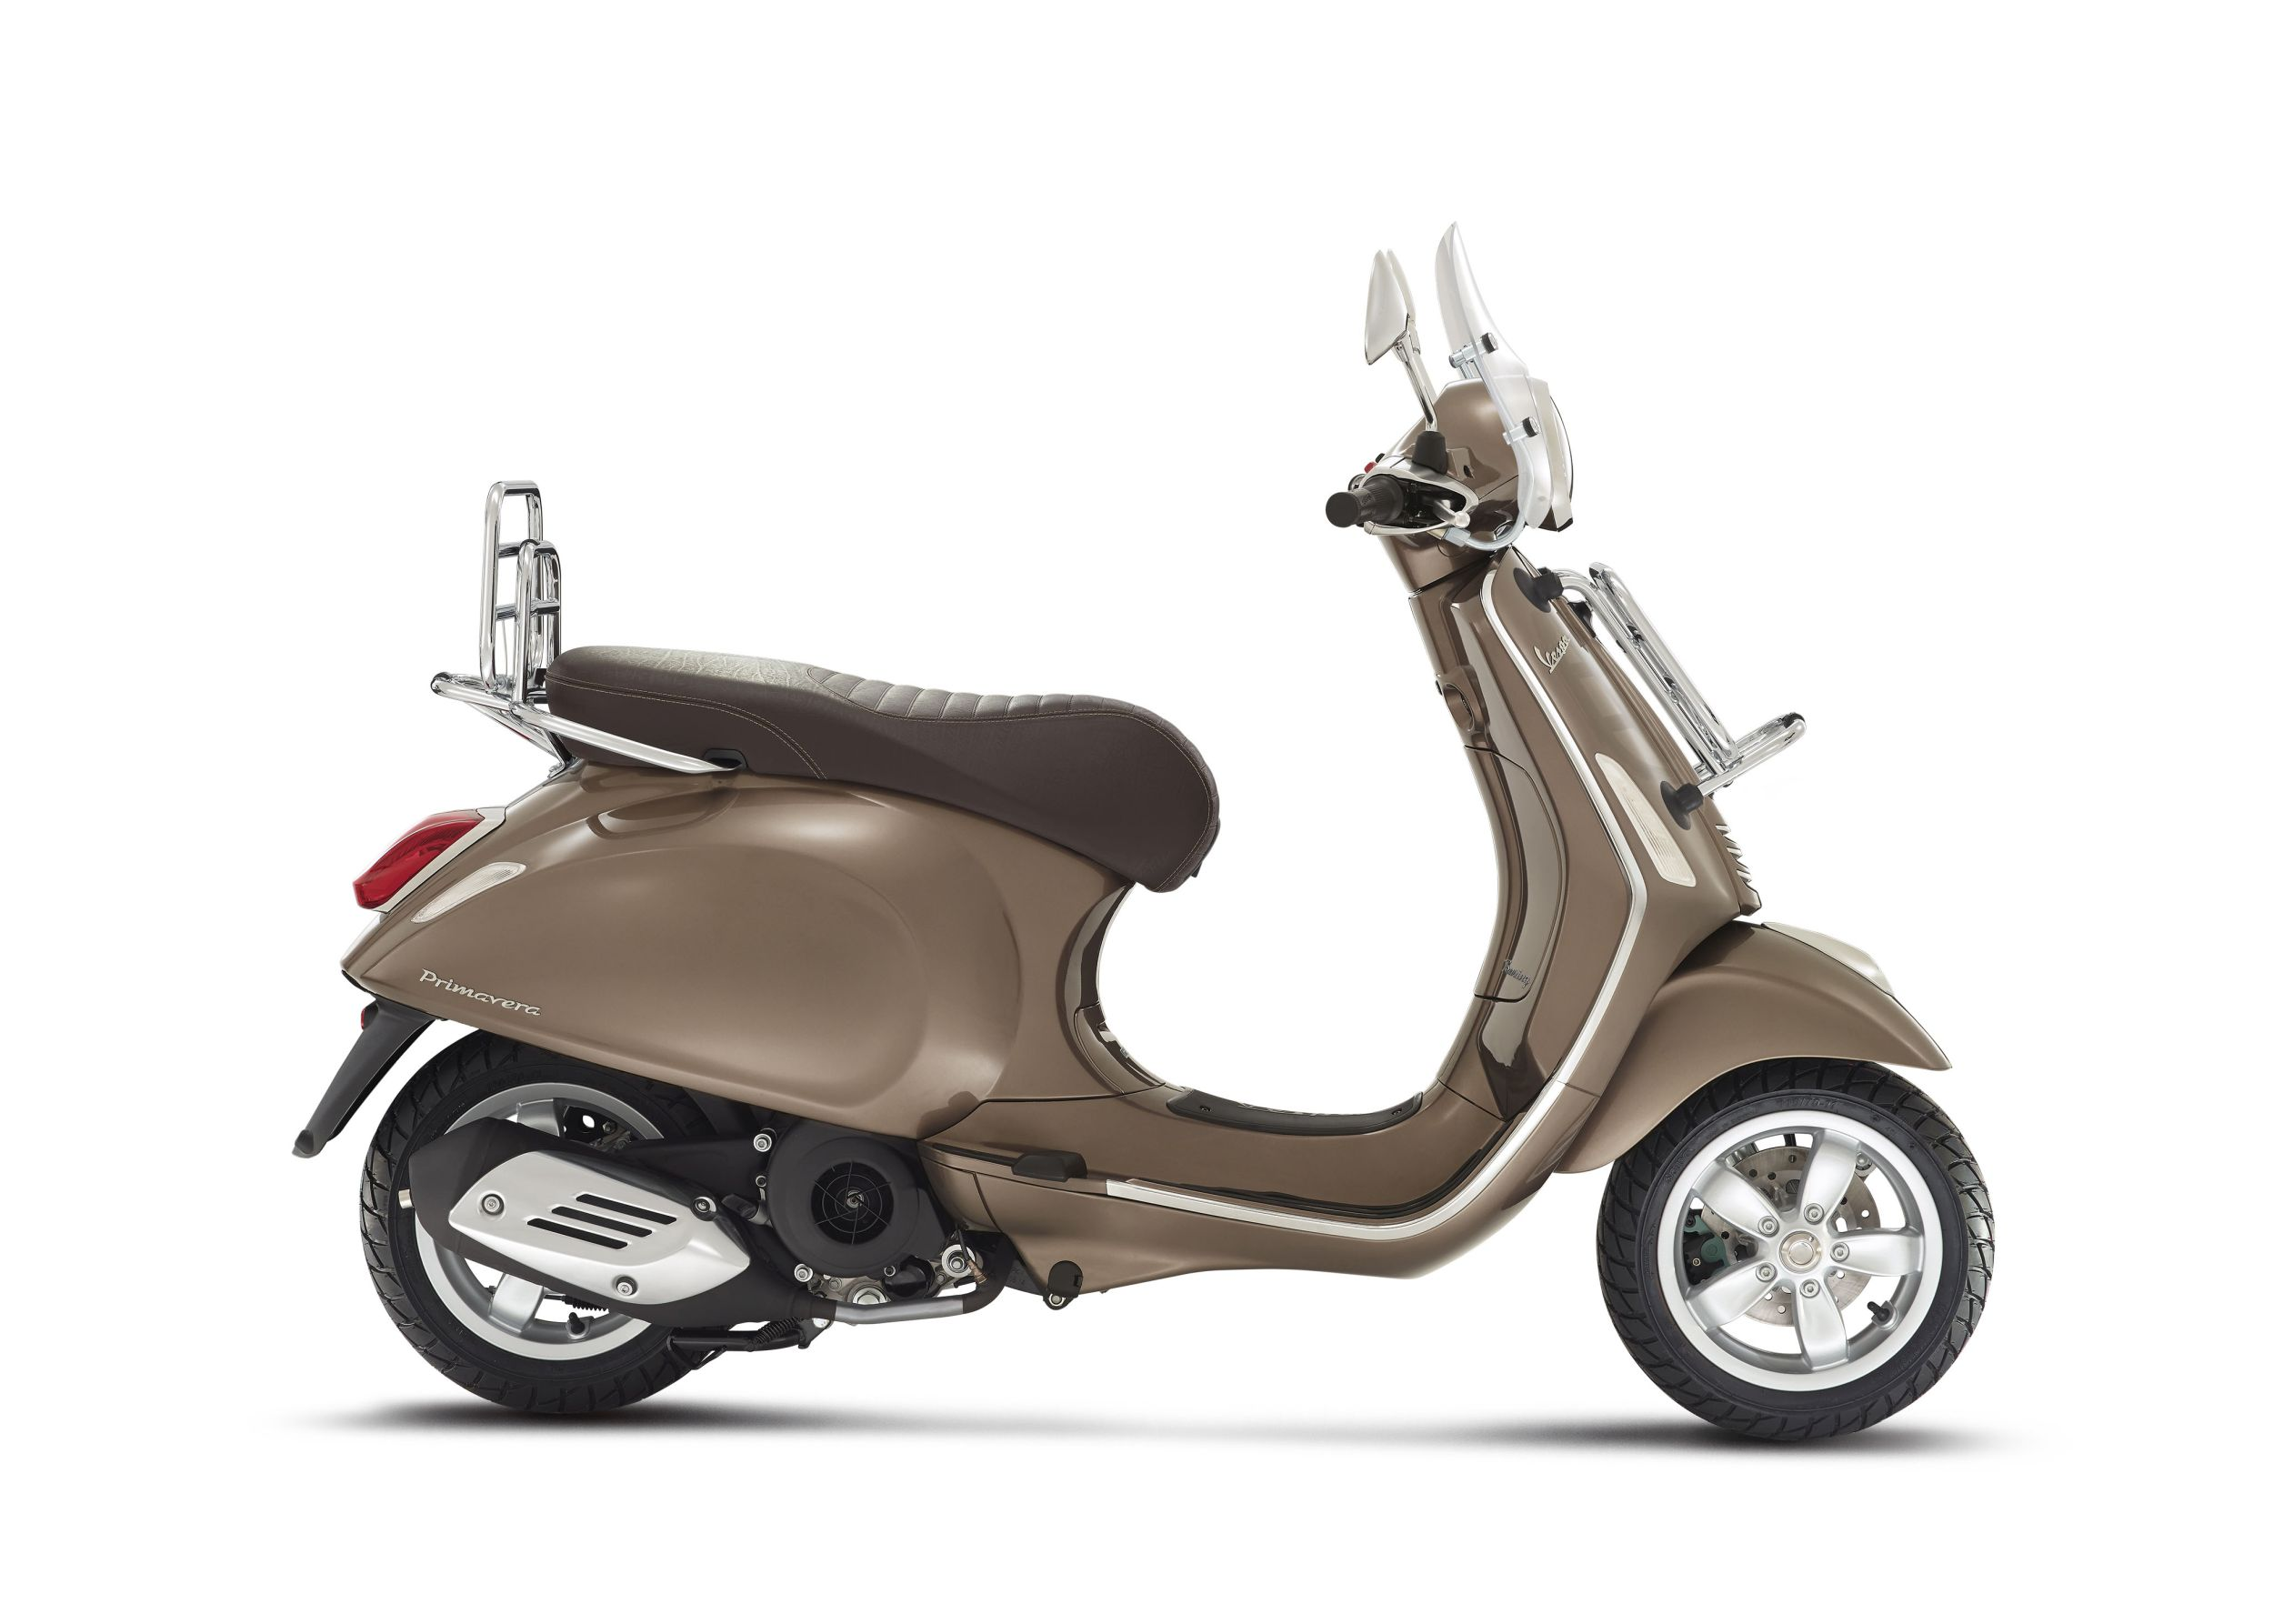 gebrauchte vespa primavera 125 i e 3v touring motorr der. Black Bedroom Furniture Sets. Home Design Ideas